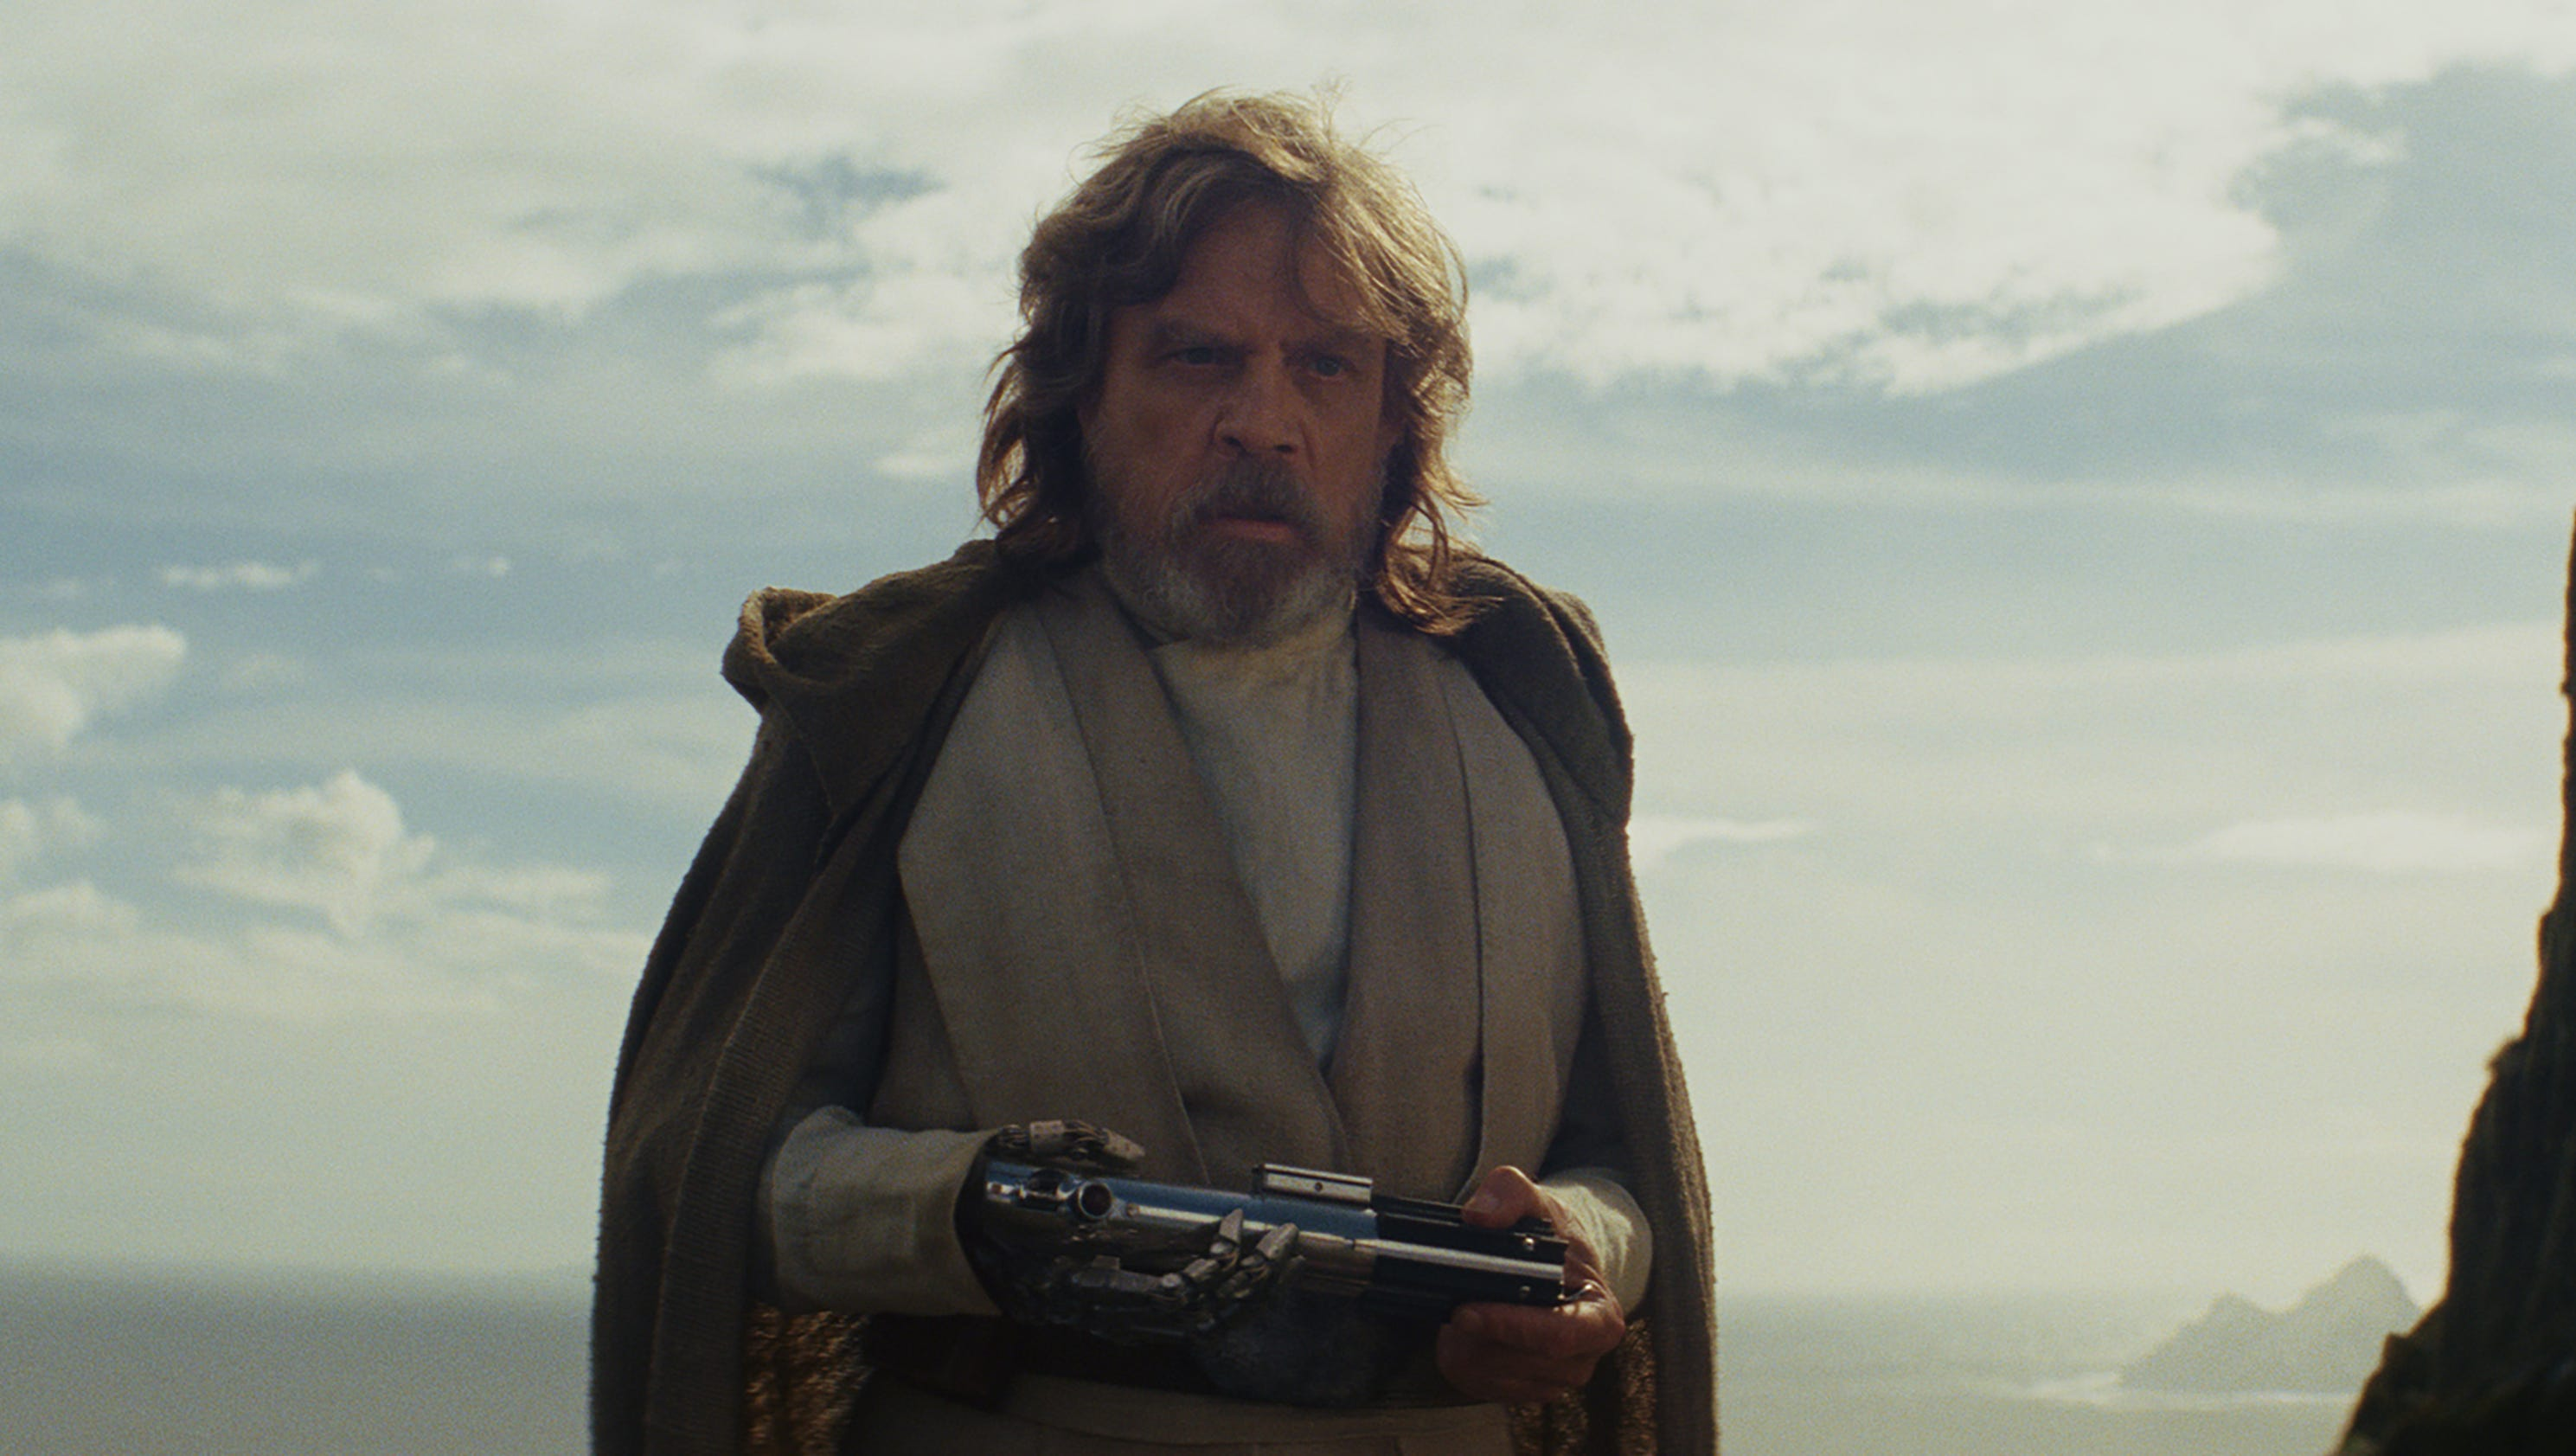 'Star Wars': It's true, 'Last Jedi' breaks the old toys (but here's why that's OK)